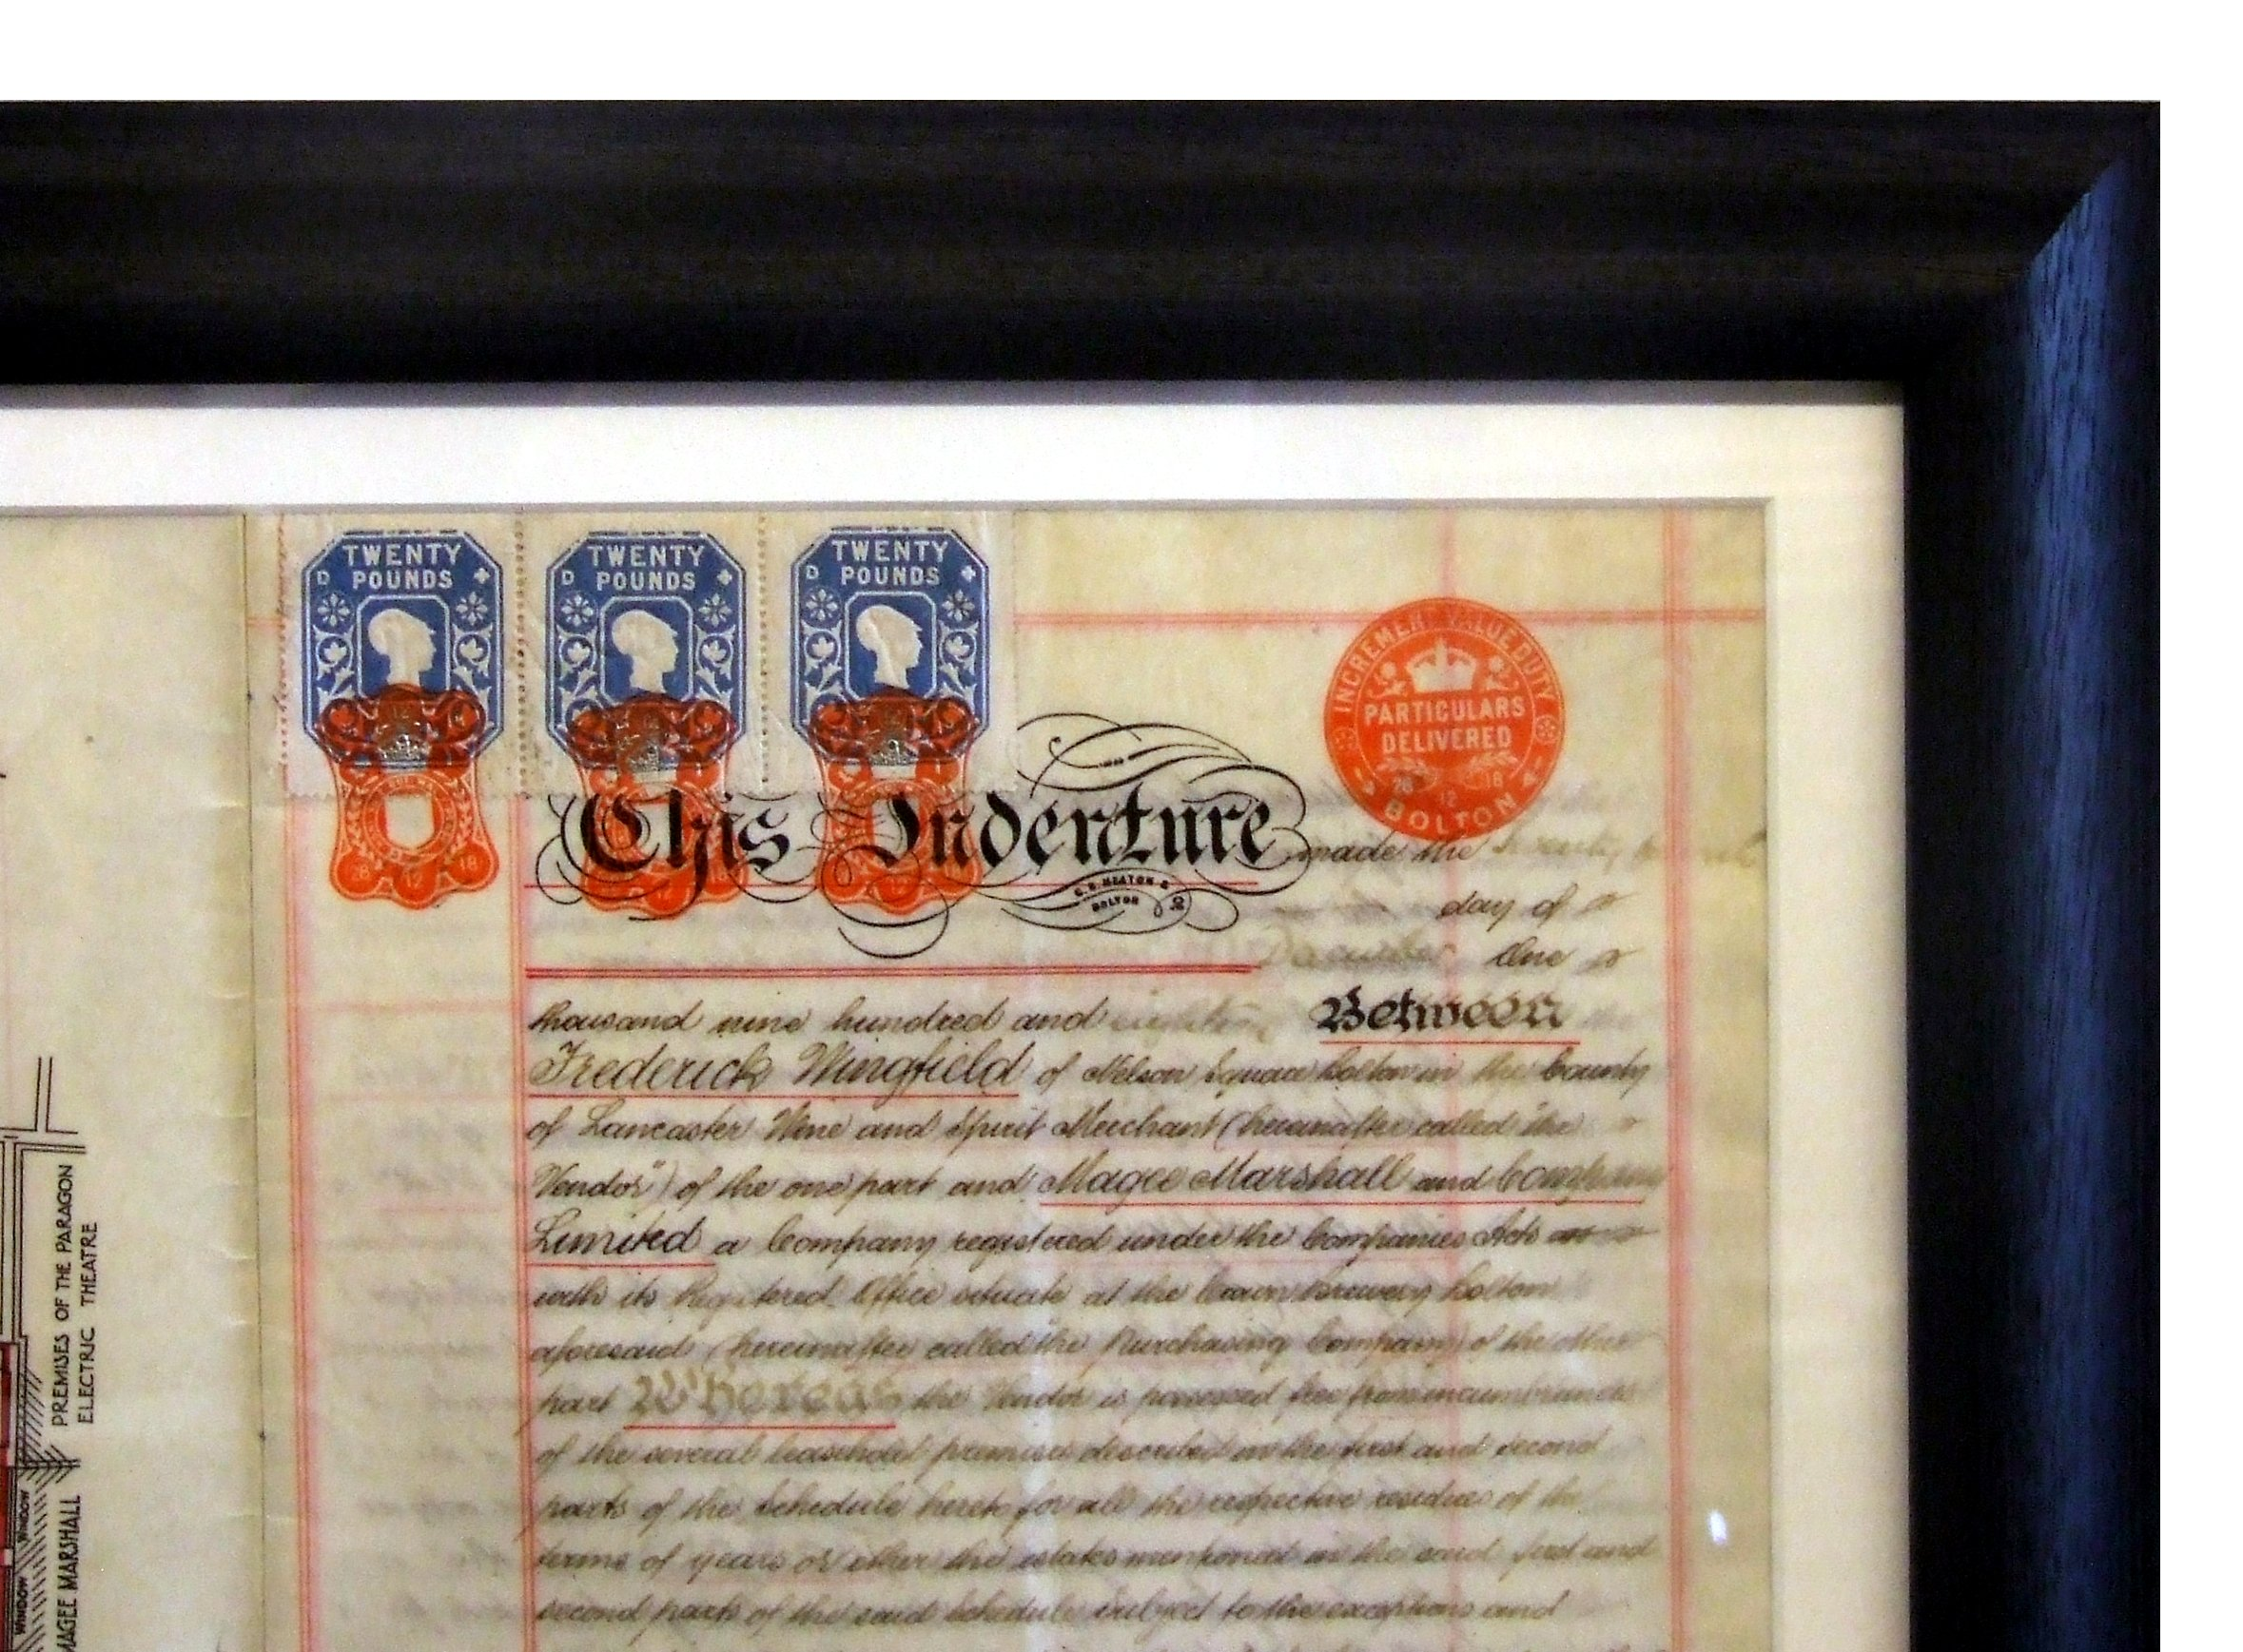 A close-up frame of a certificate